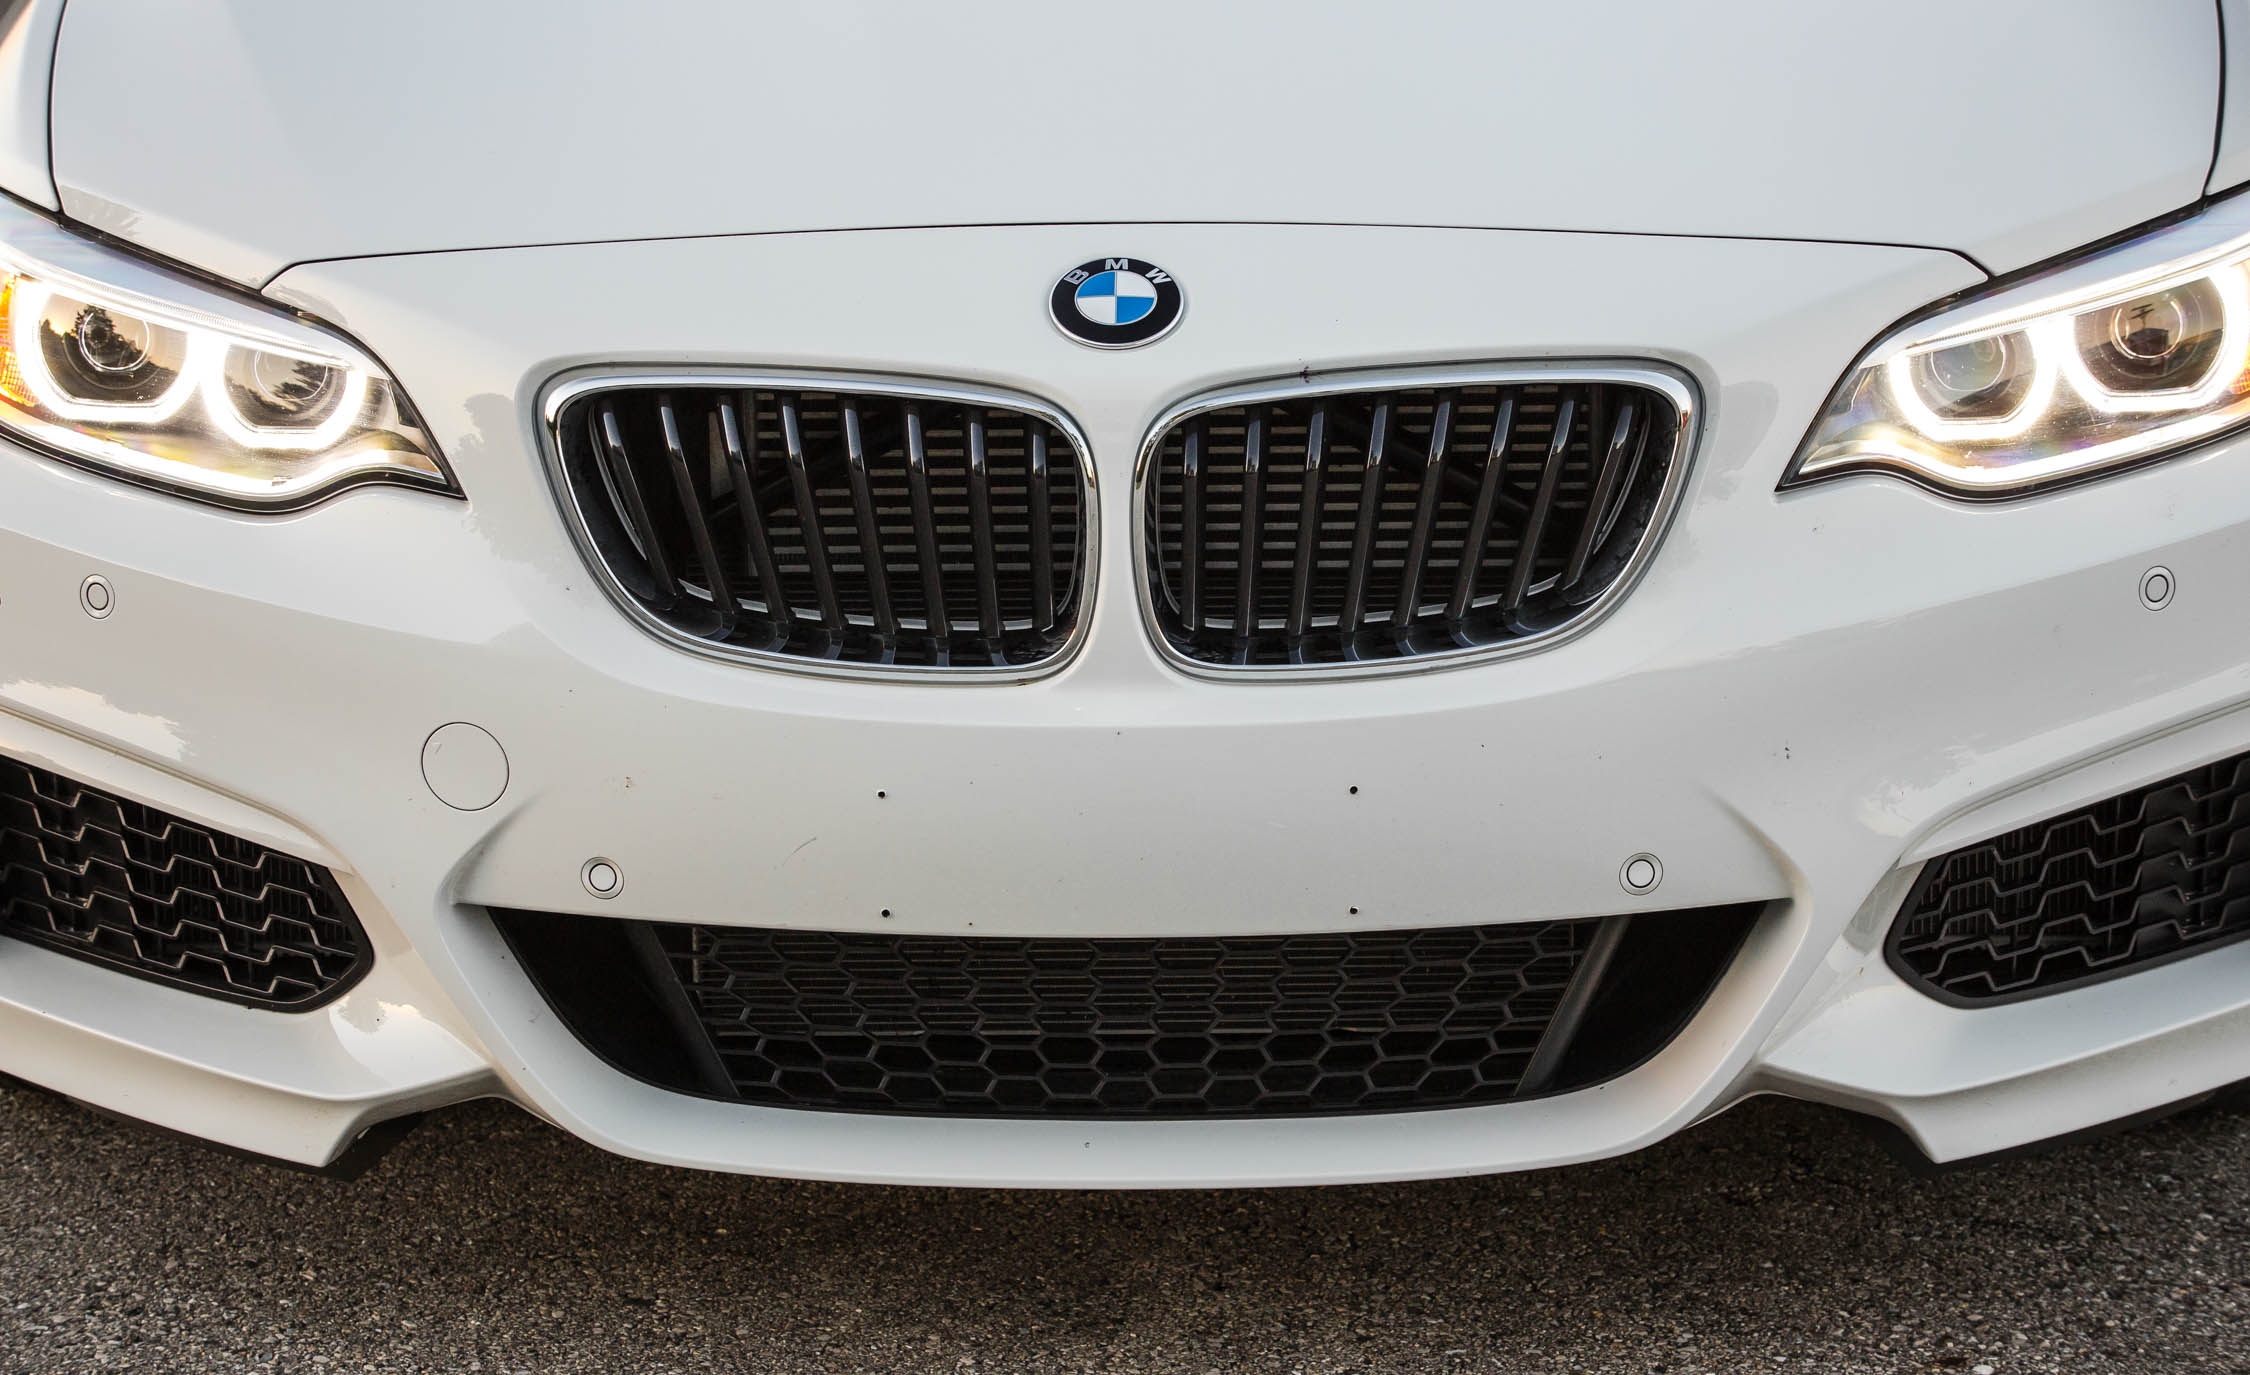 2017 BMW M240i Coupe Automatic Exterior View Grille And Bumper (Photo 9 of 36)